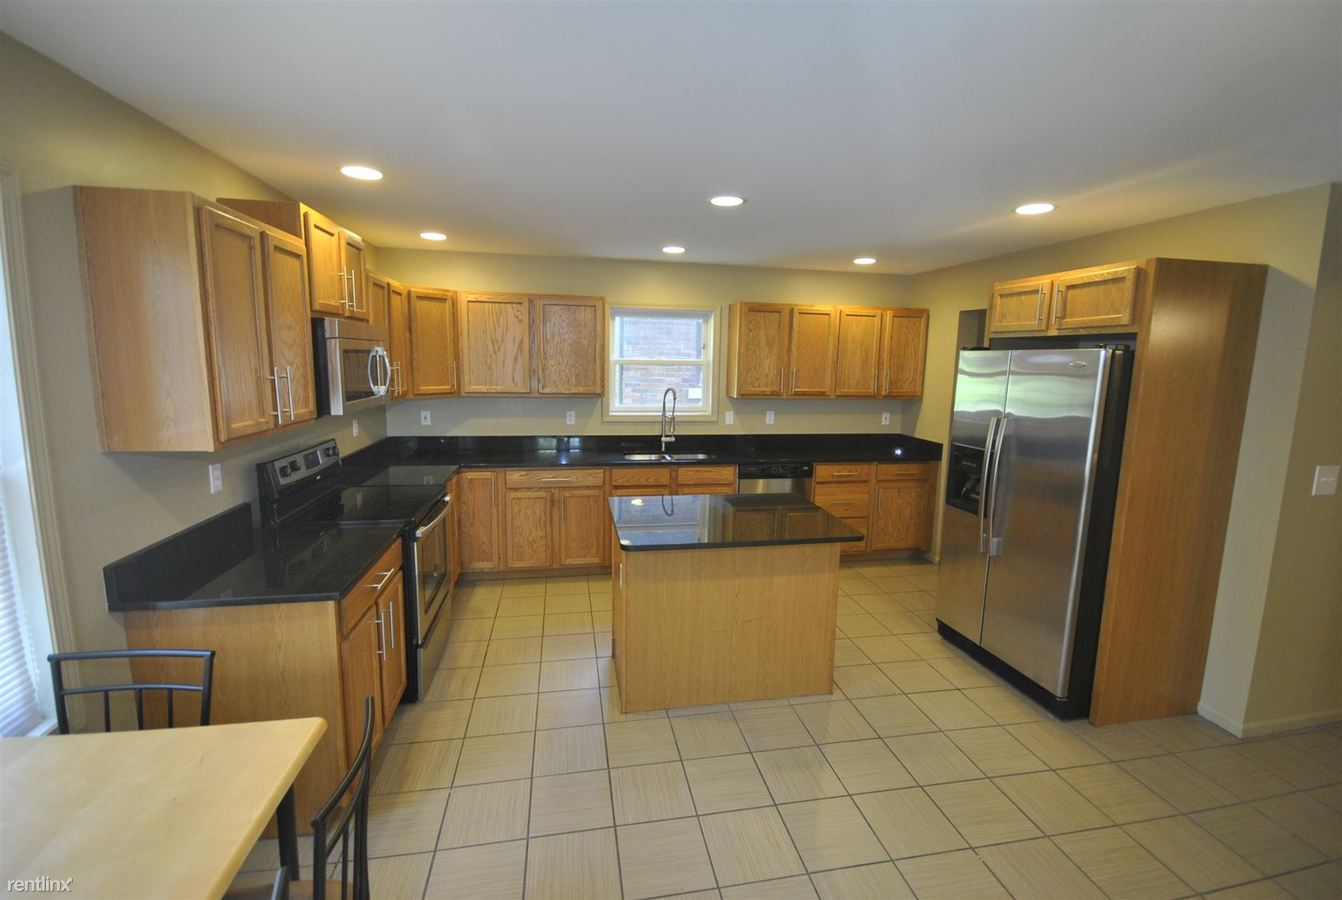 5 Bedrooms 3 Bathrooms House for rent at 512 S 4th Ave in Ann Arbor, MI